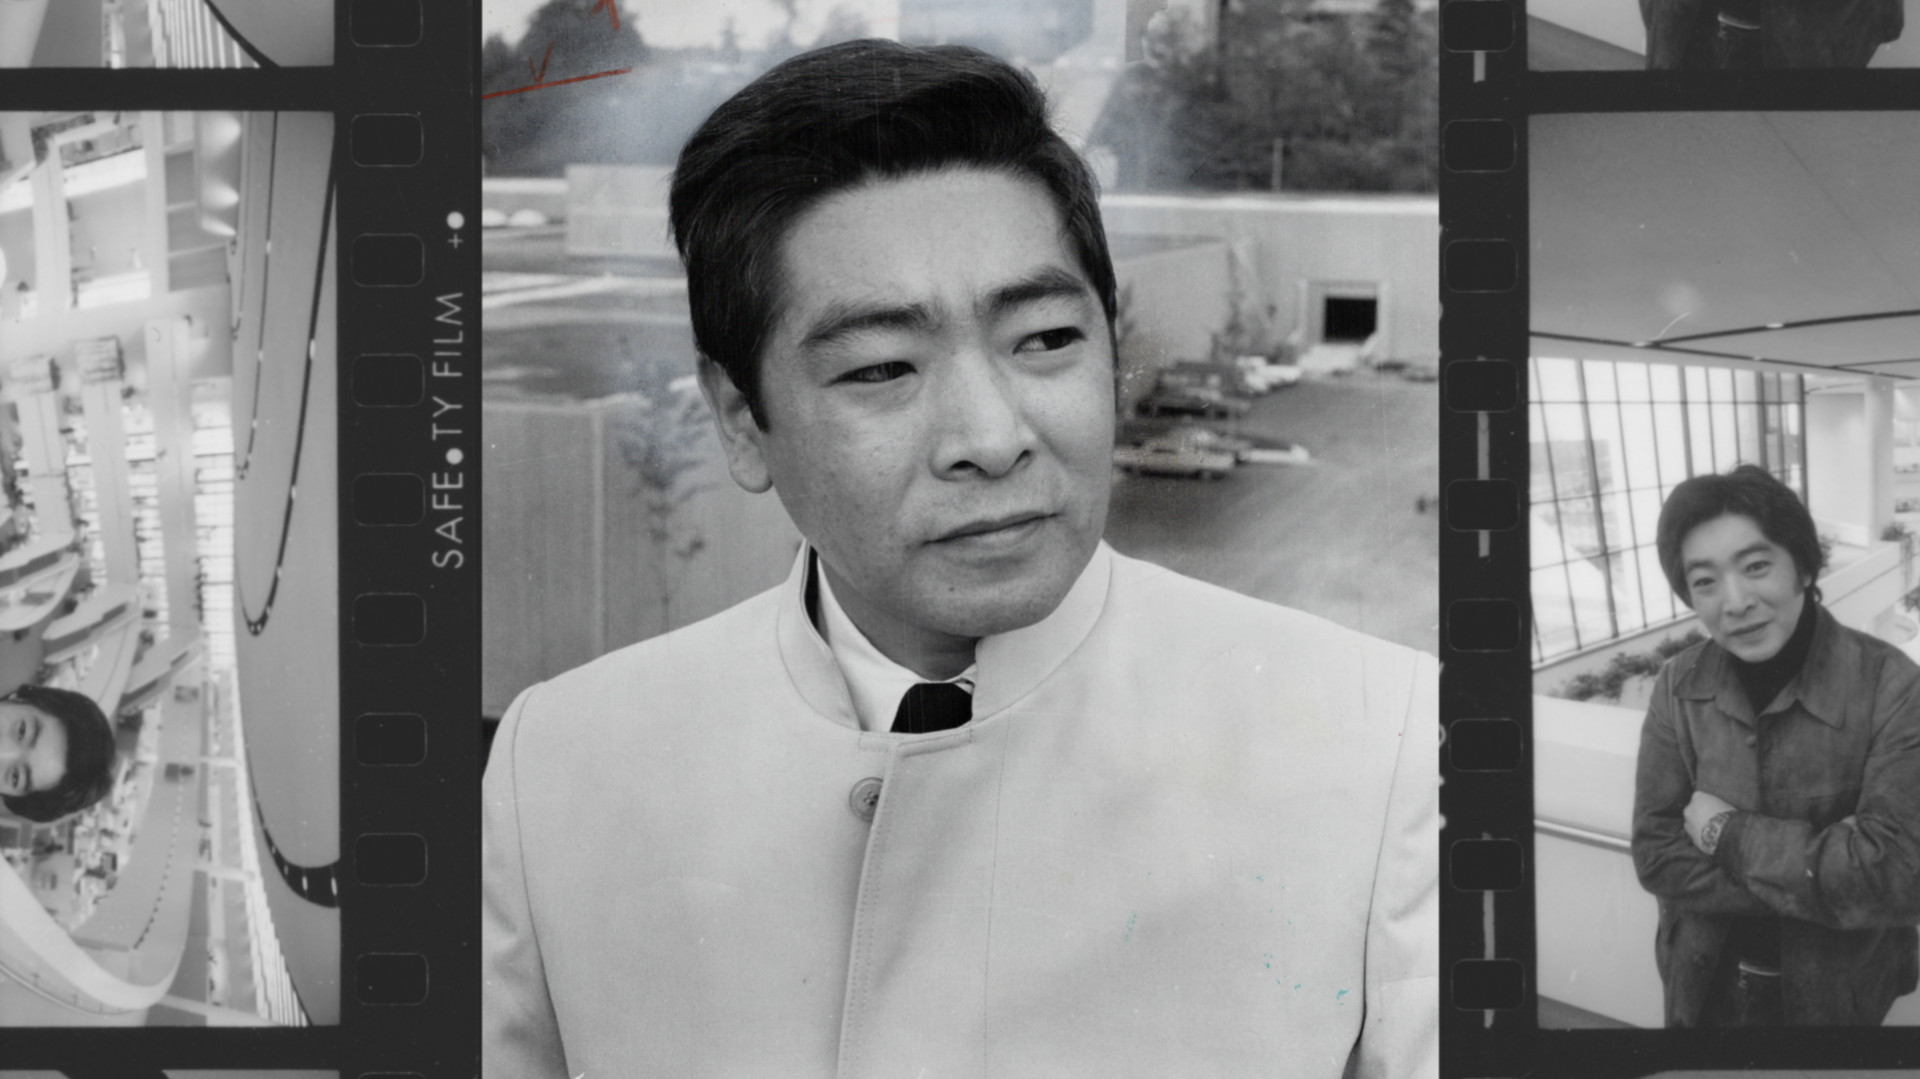 Raymond Moriyama, pictured in stills used in Magical Imperfection, image courtesy of ADFF